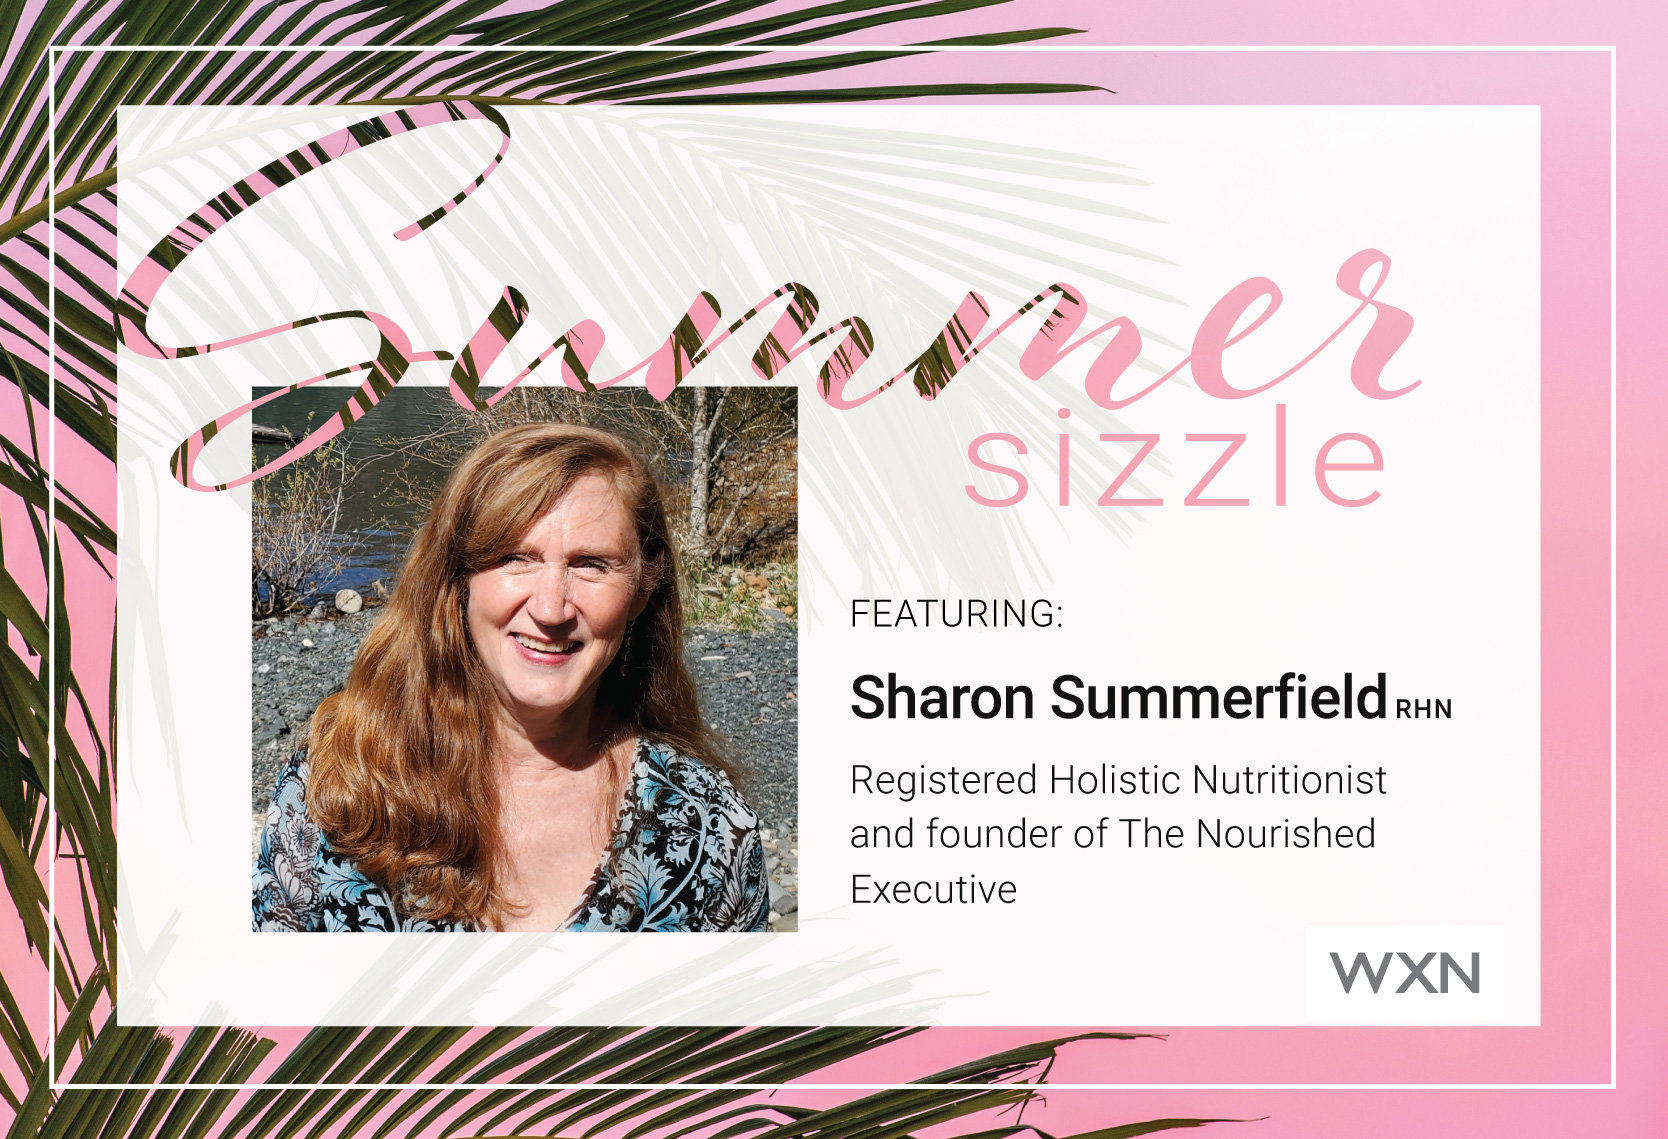 Summer Sizzle event series featuring Sharon Summerfield